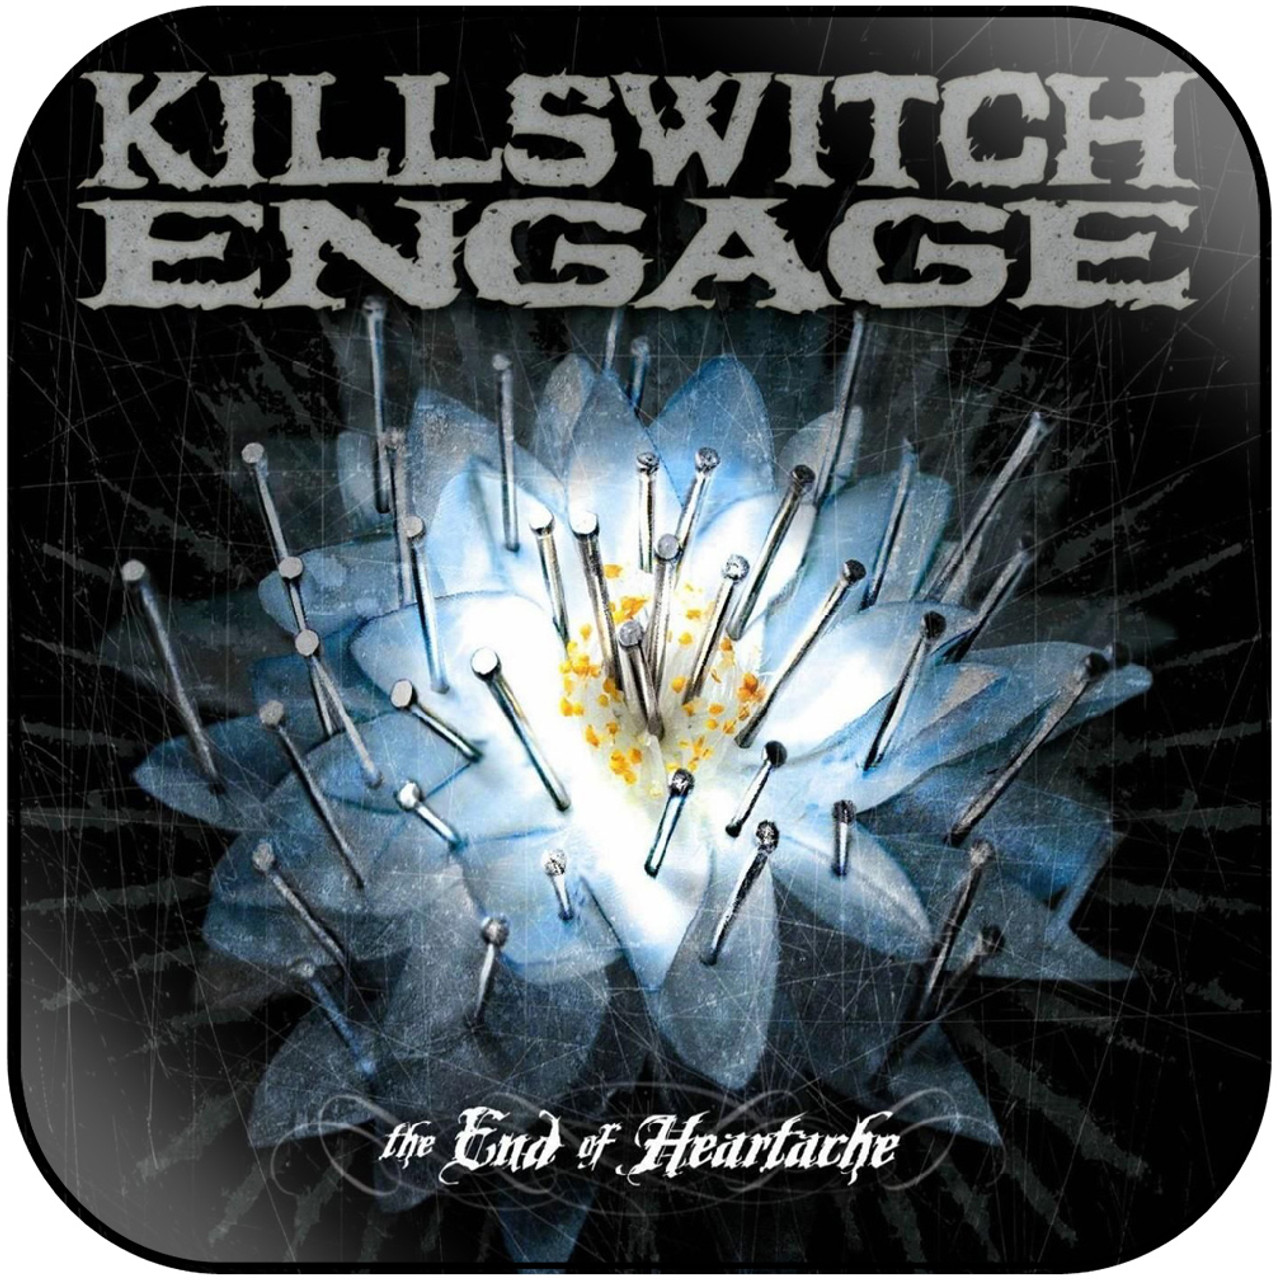 Killswitch Engage - The End Of Heartache Album Cover Sticker